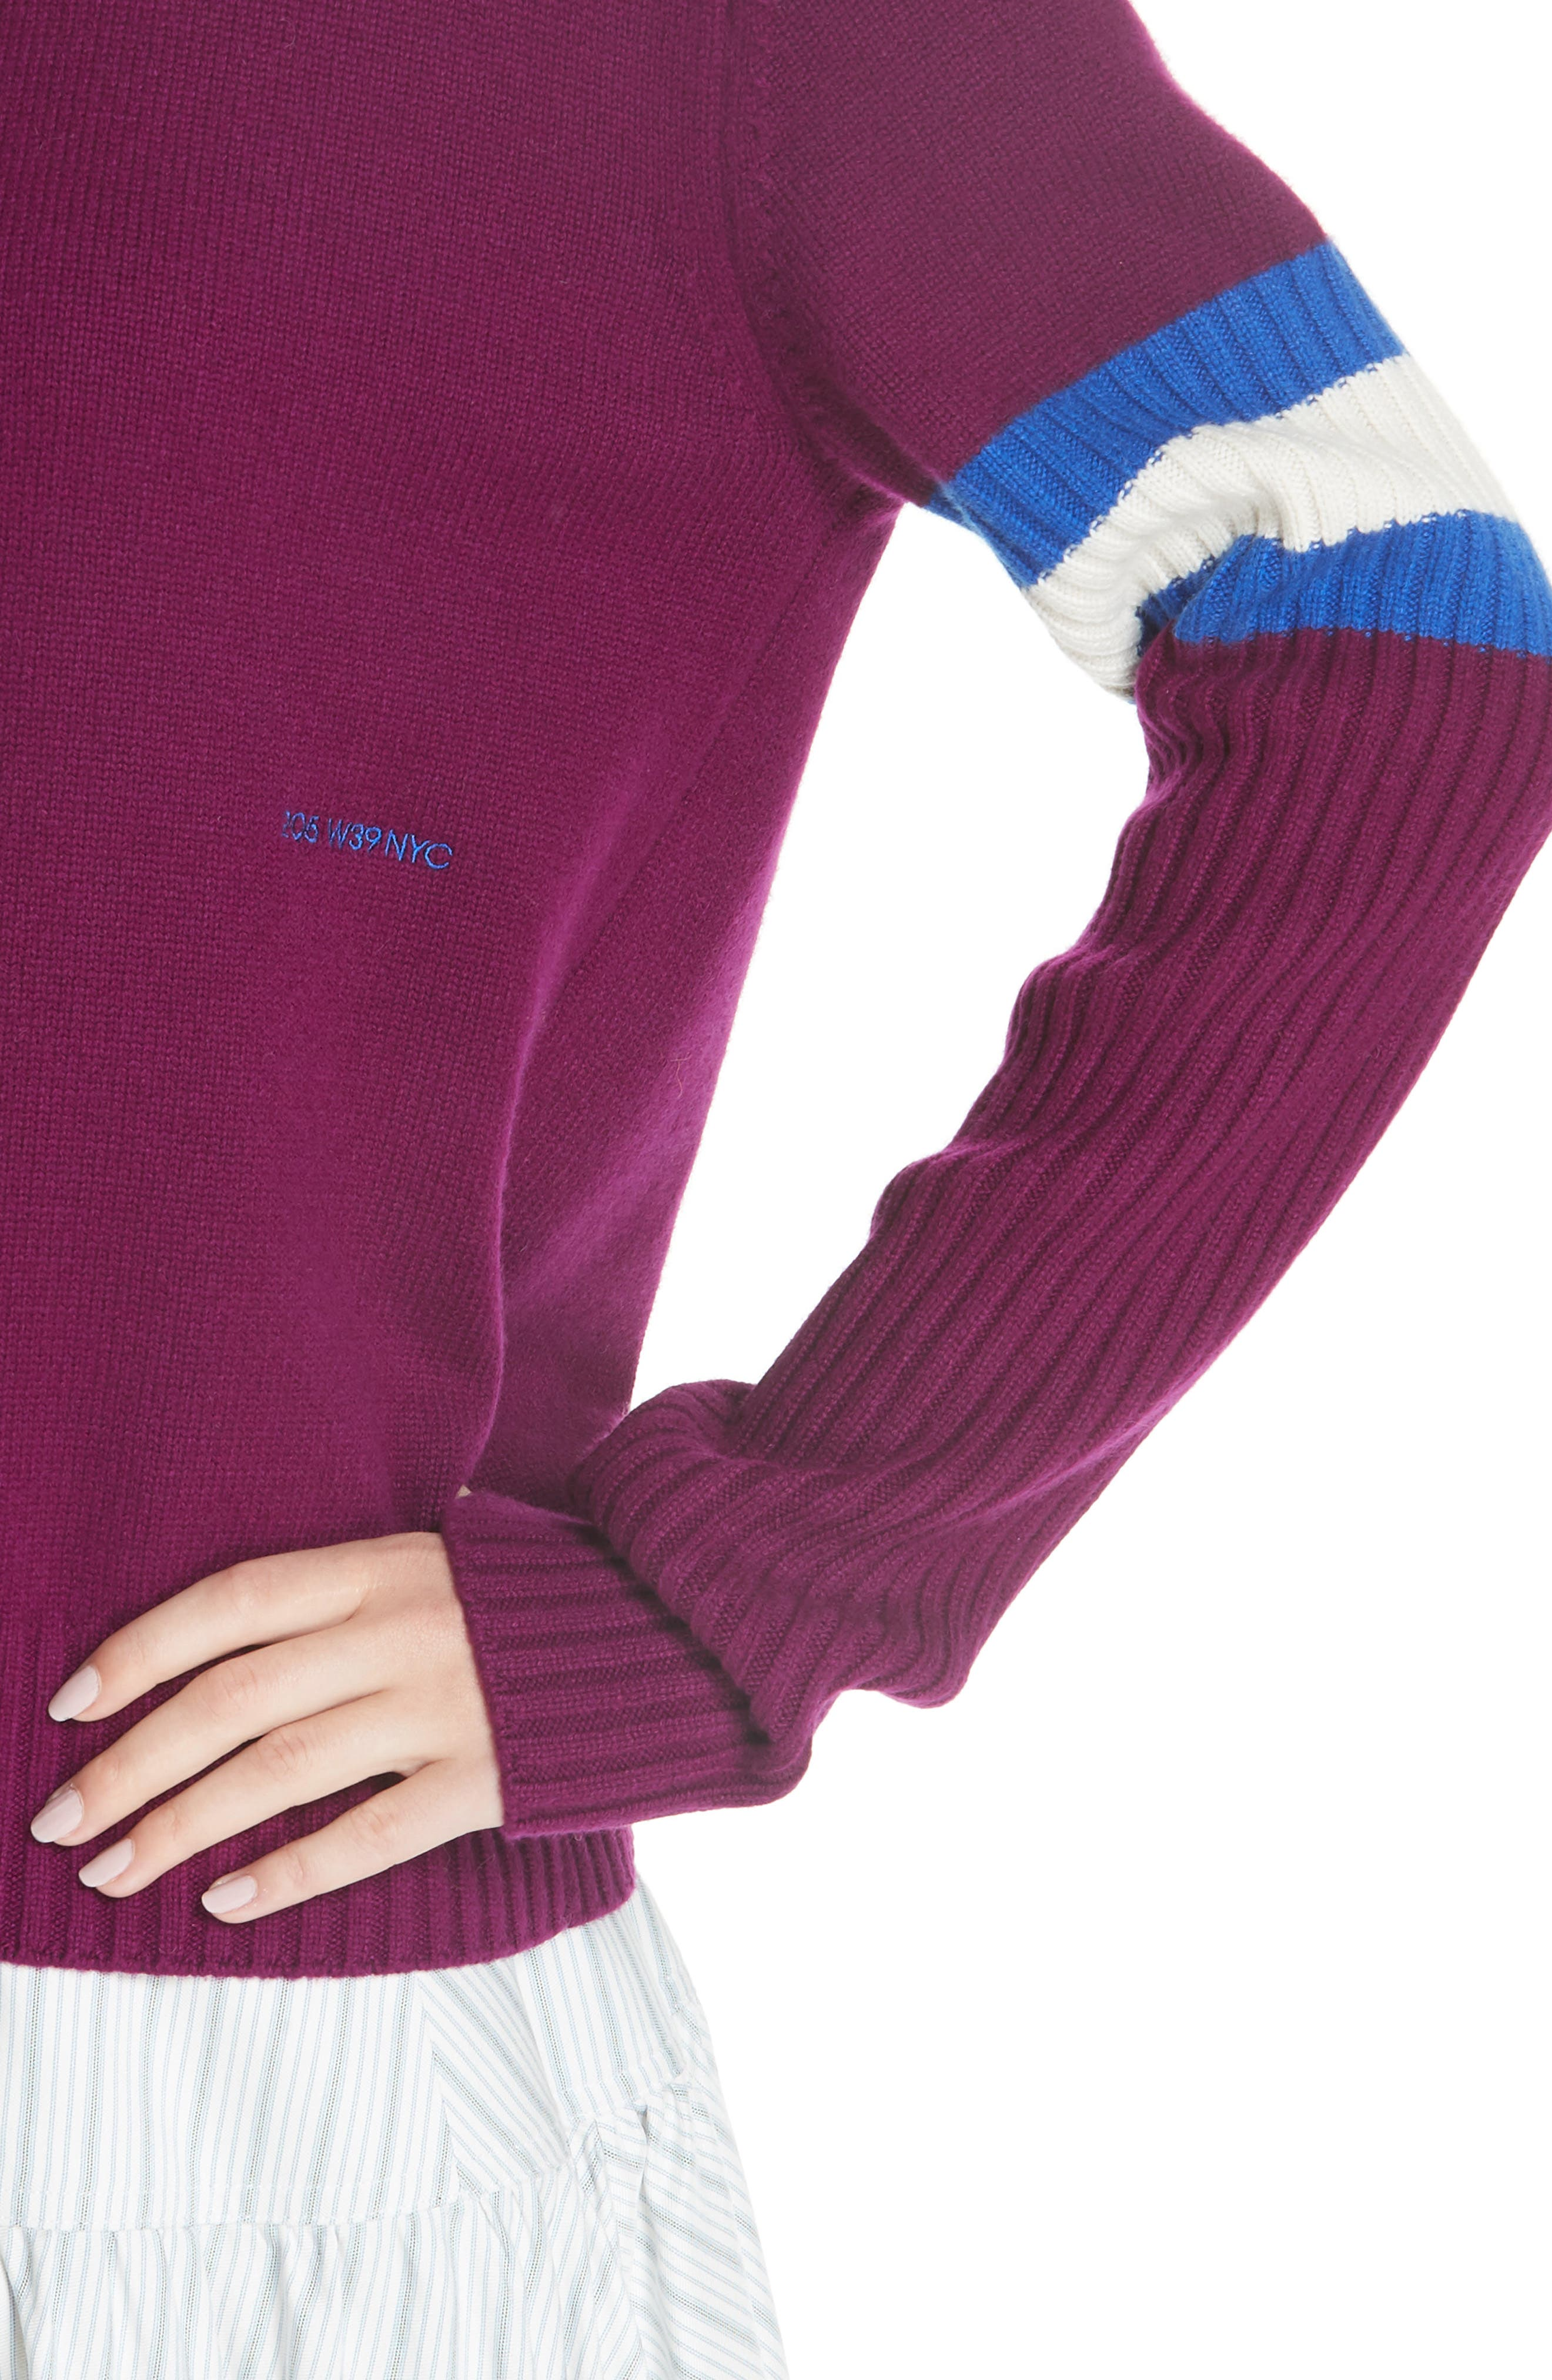 Cashmere Stripe Sleeve Sweater,                             Alternate thumbnail 4, color,                             DEEP PURPLE BRIGHT BLUE WHITE